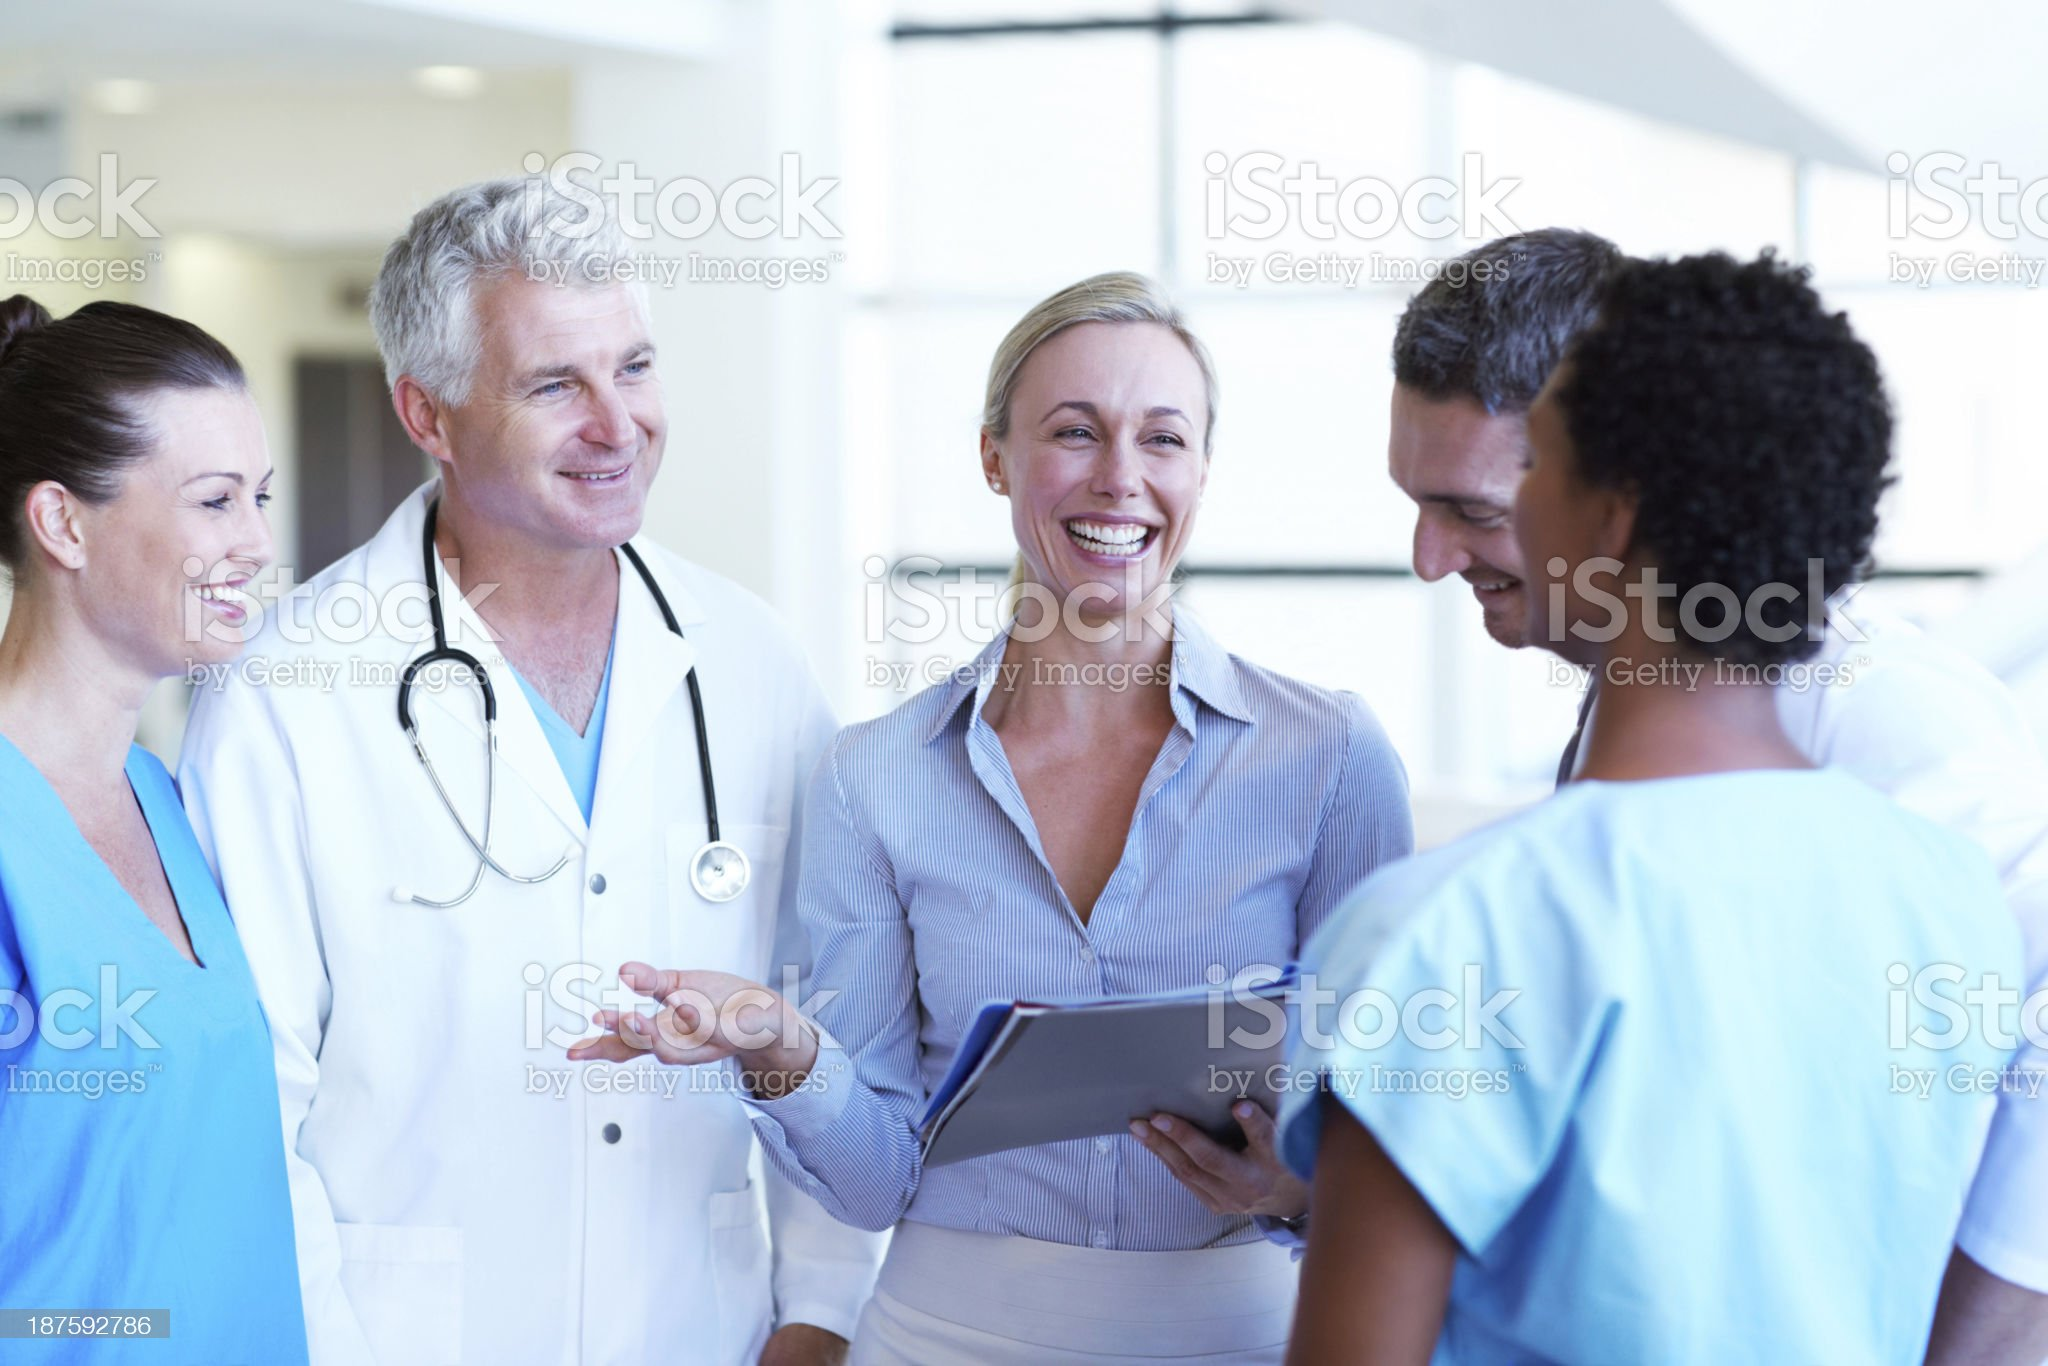 They're a close-knit team of colleagues royalty-free stock photo